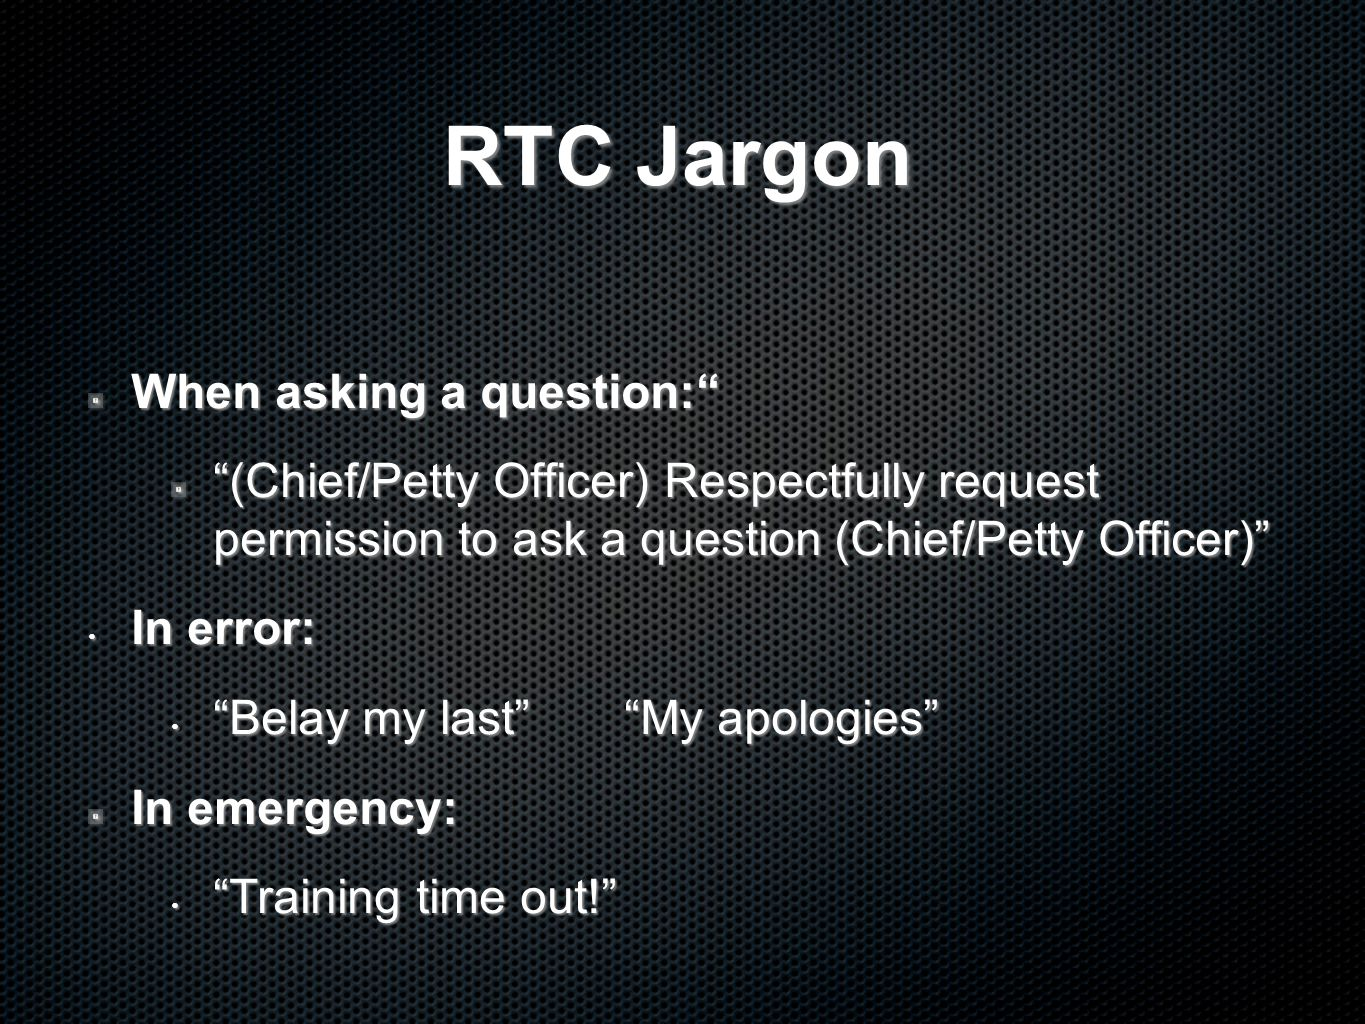 RTC Jargon When asking a question: (Chief/Petty Officer) Respectfully request permission to ask a question (Chief/Petty Officer) In error: In error: Belay my last My apologies Belay my last My apologies In emergency: Training time out! Training time out!